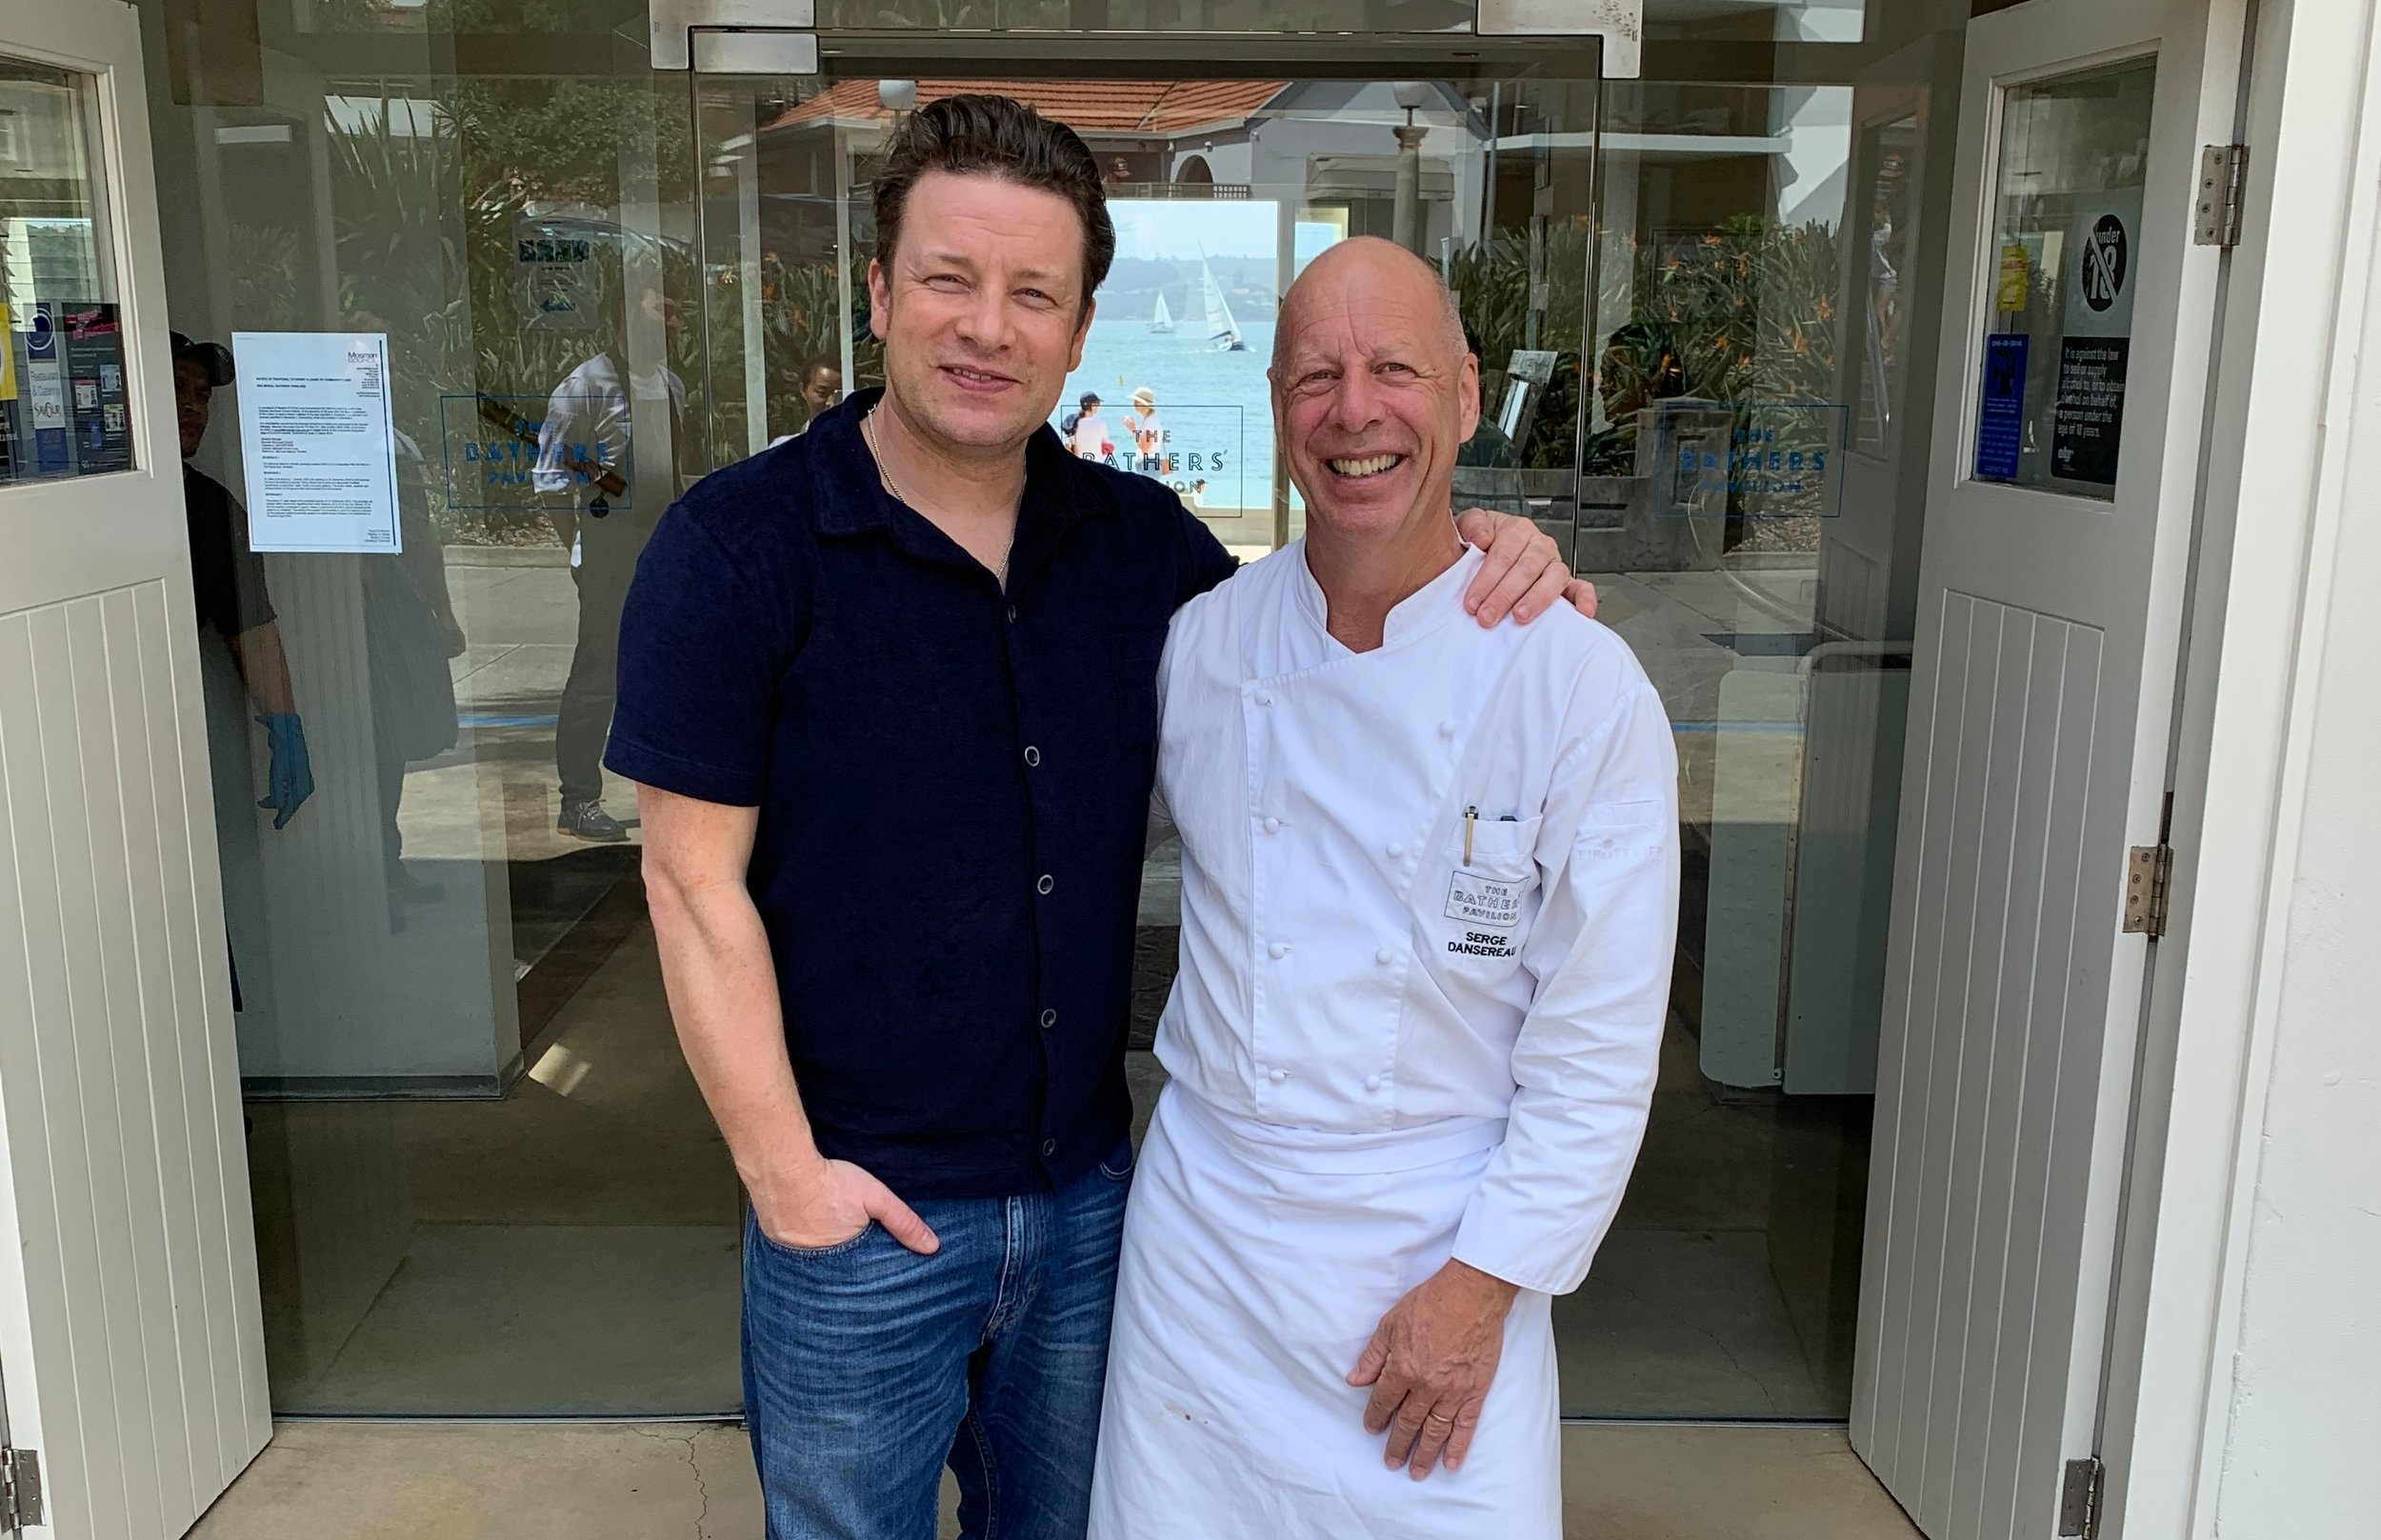 PUCKA TUCKA: Bathers Pavilion in Mosman serves up the goods to Jamie Oliver yesterday.